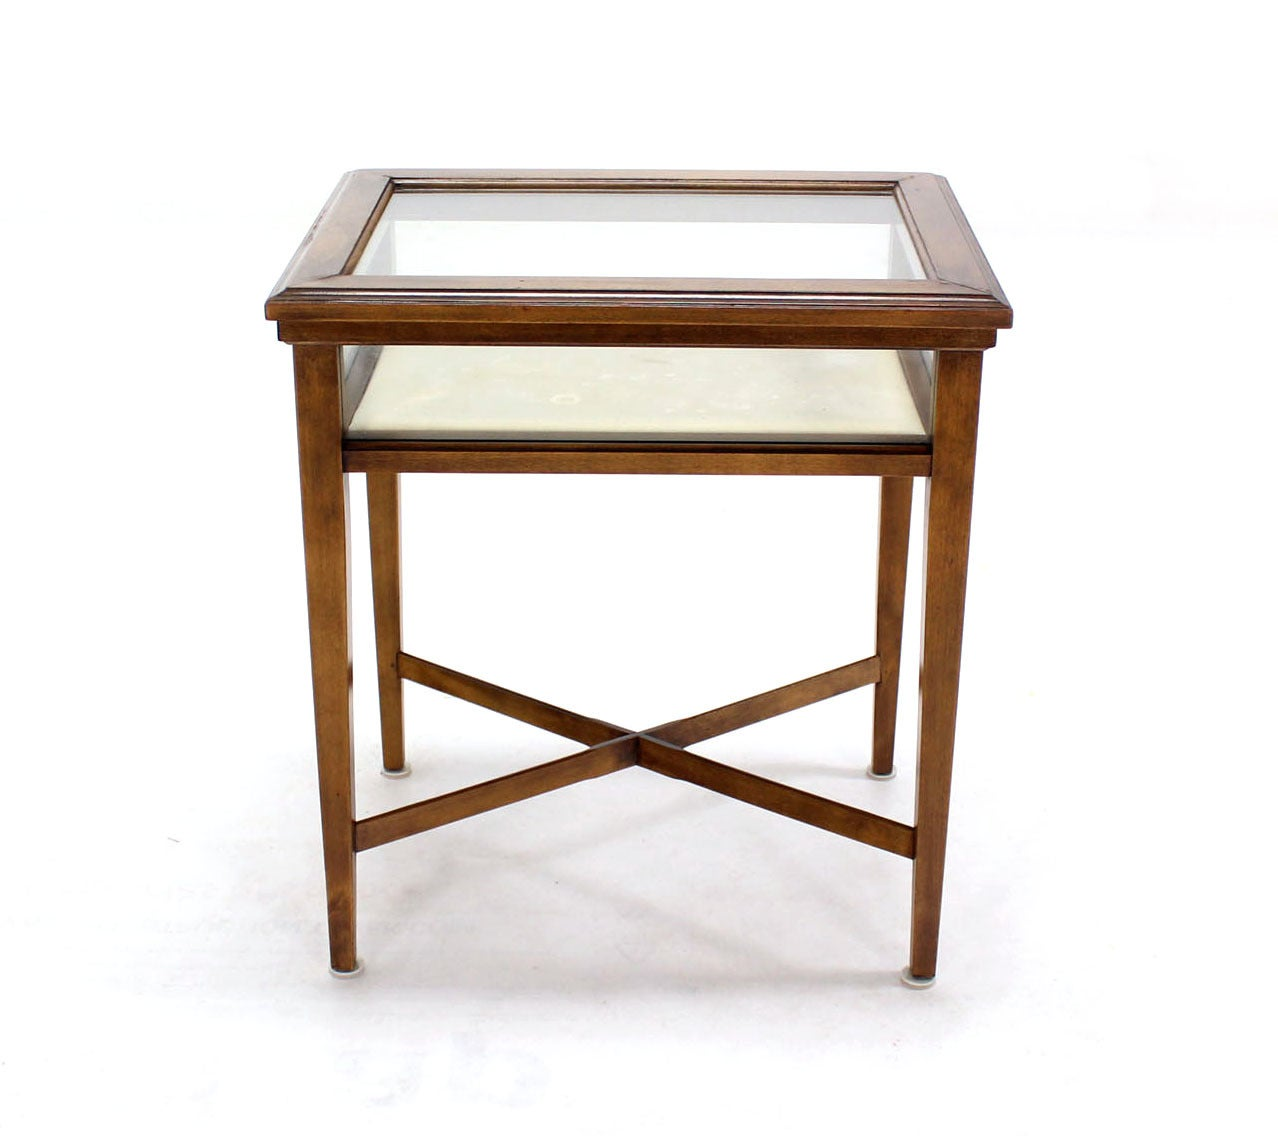 Very Impressive portraiture of Pair of Glass and Wood Lift Top Cross Base End Tables at 1stdibs with #442315 color and 1278x1136 pixels